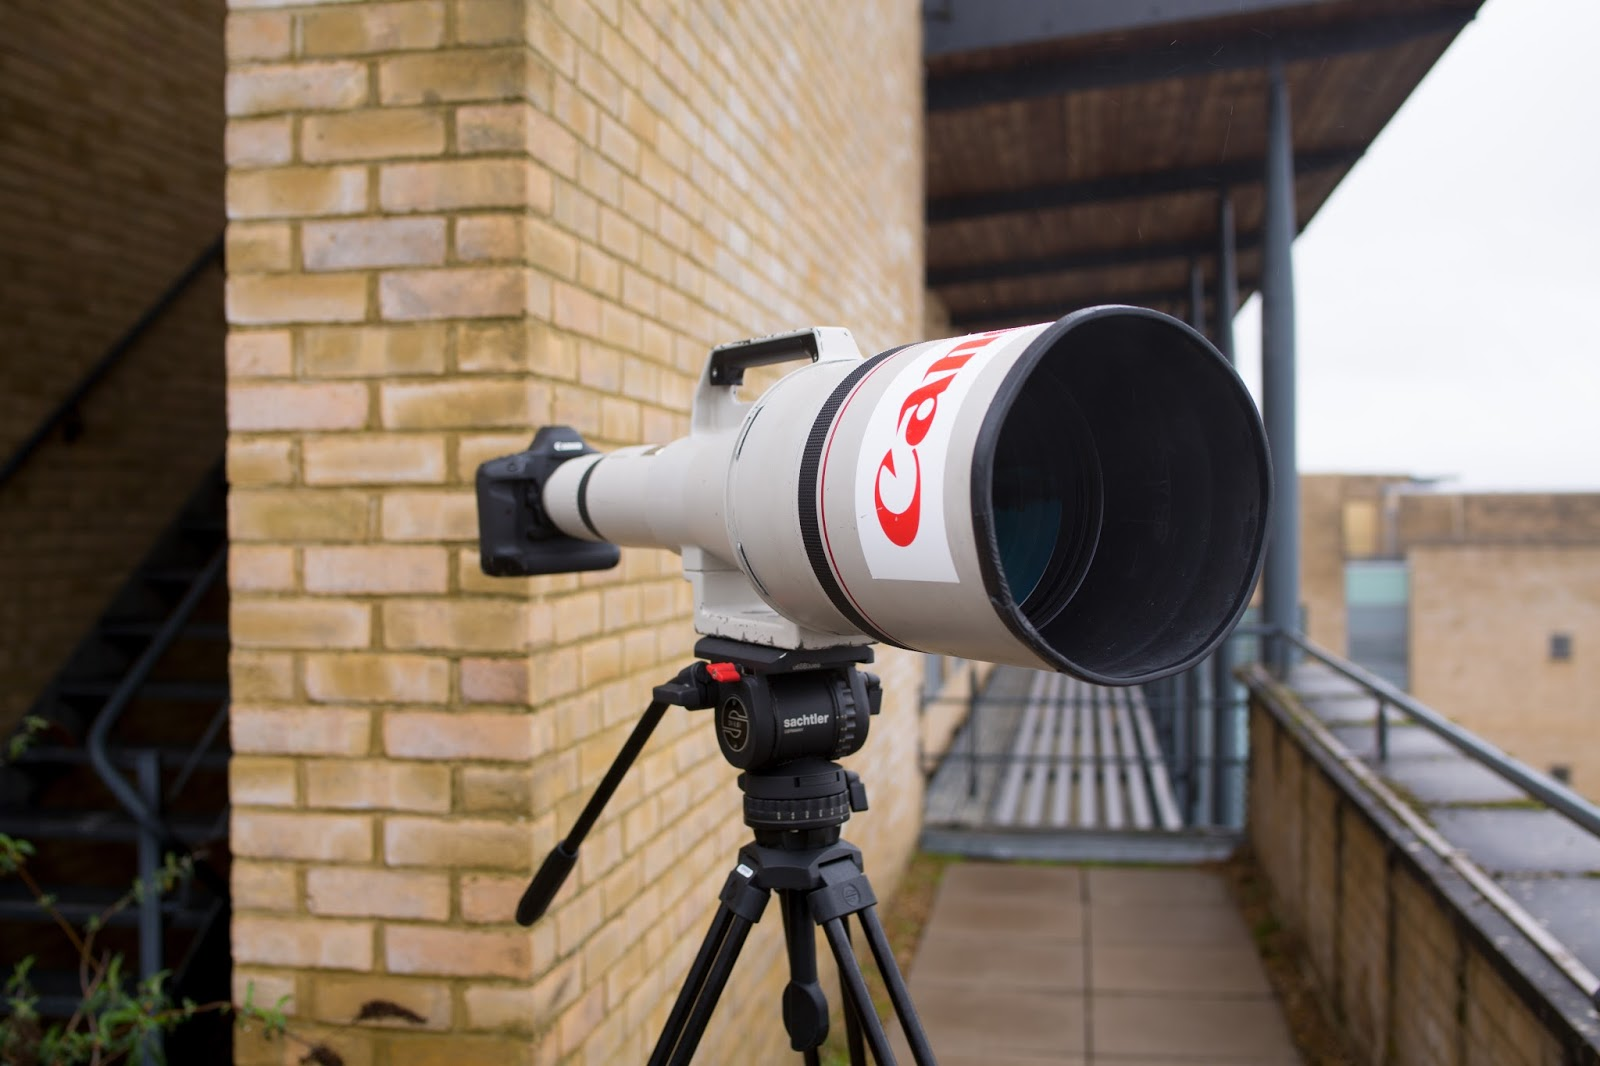 CANON EF 1200MM F/5.6 L USM SUPER TELEPHOTO LENS